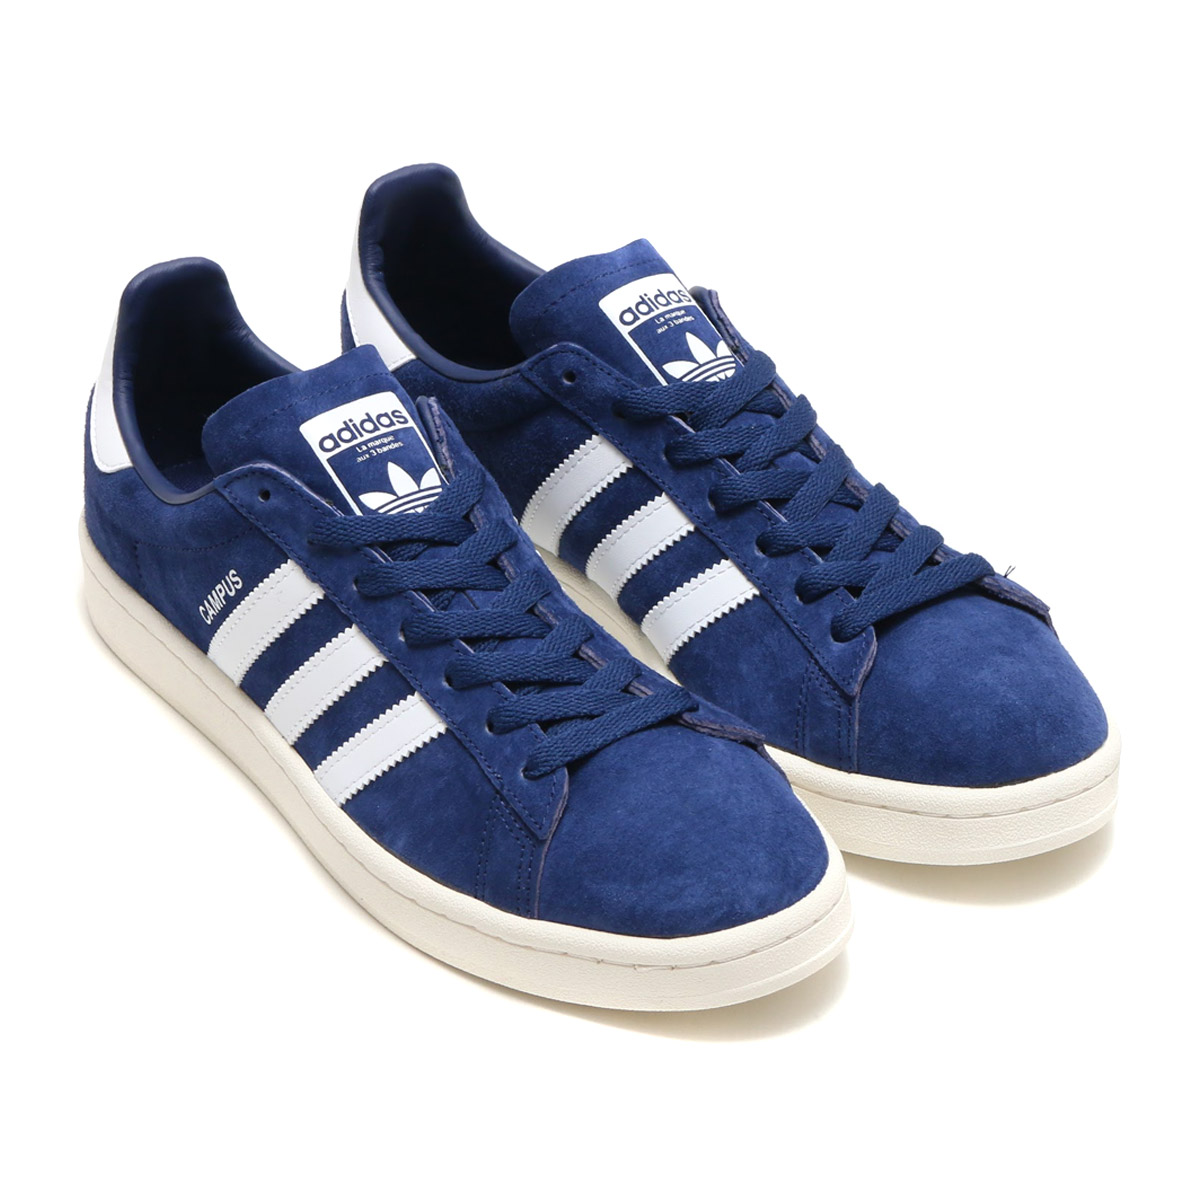 innovative design d1c6d cae00 adidas Originals CAMPUS (Adidas original scan pass) (Dark Blue Running  White Chalk White) 17FW-I